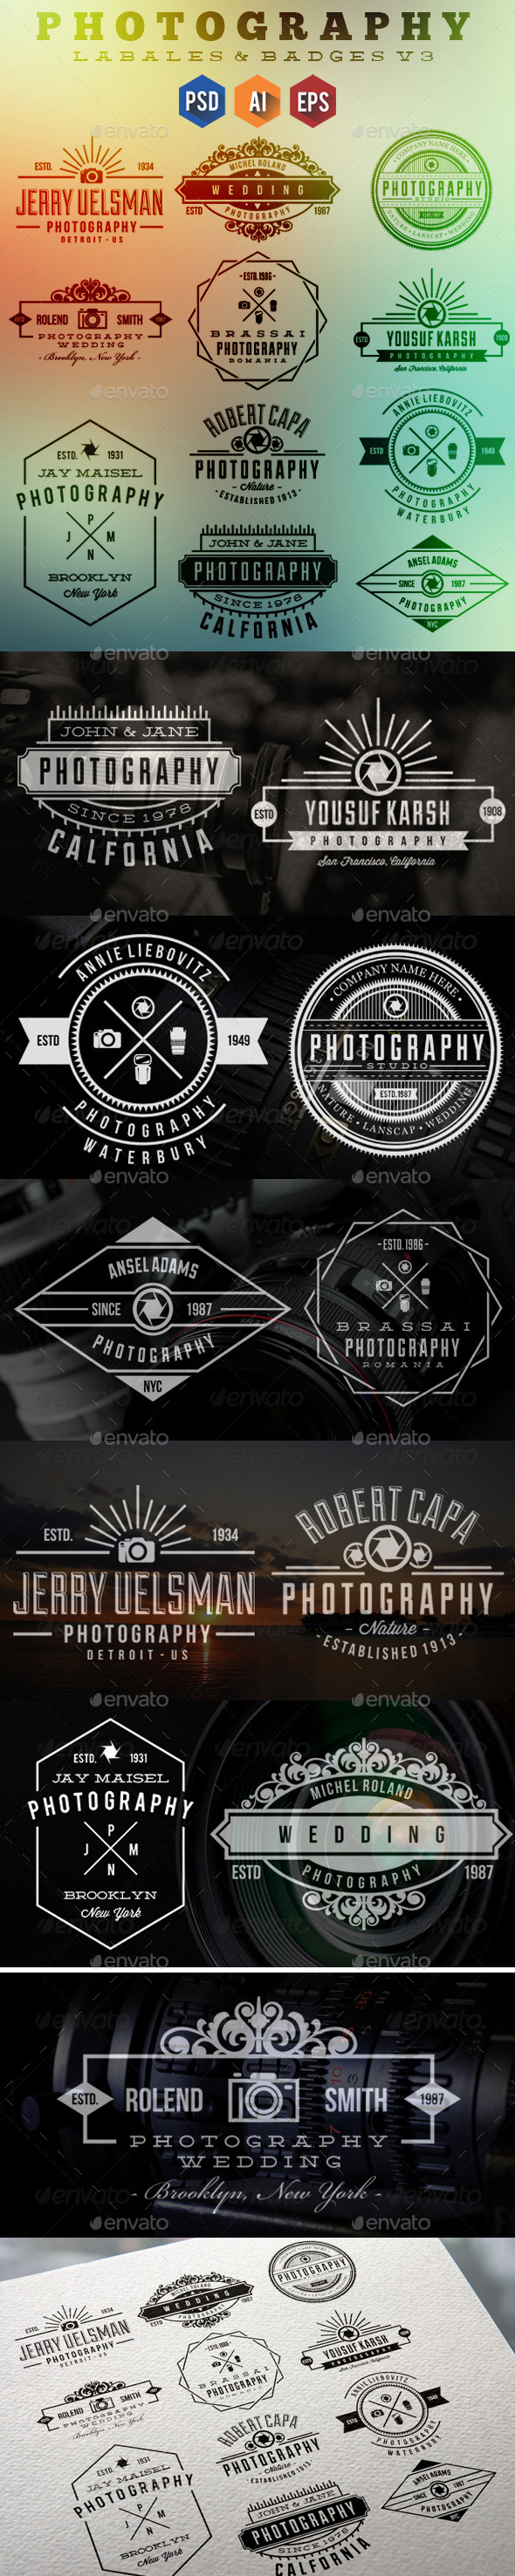 11 Photography Badges & Labels v3